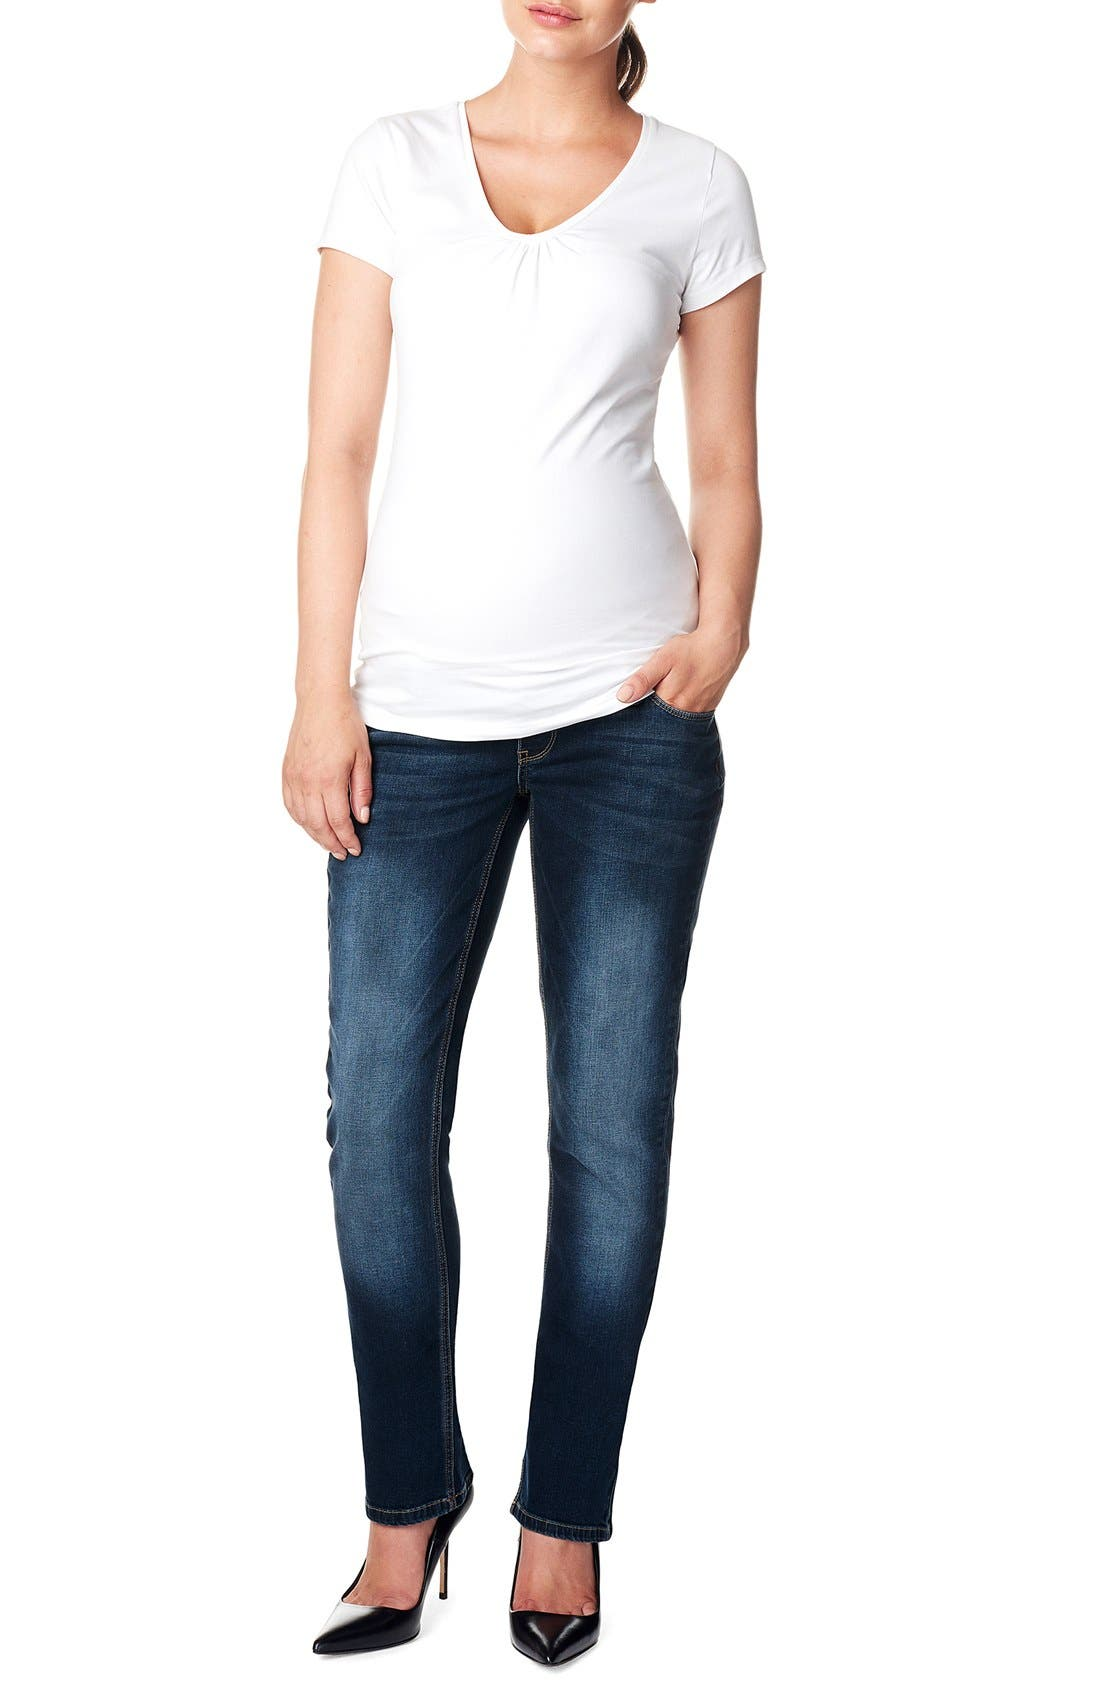 Noppies 'Mena Comfort' Over the Belly Straight Leg Maternity Jeans